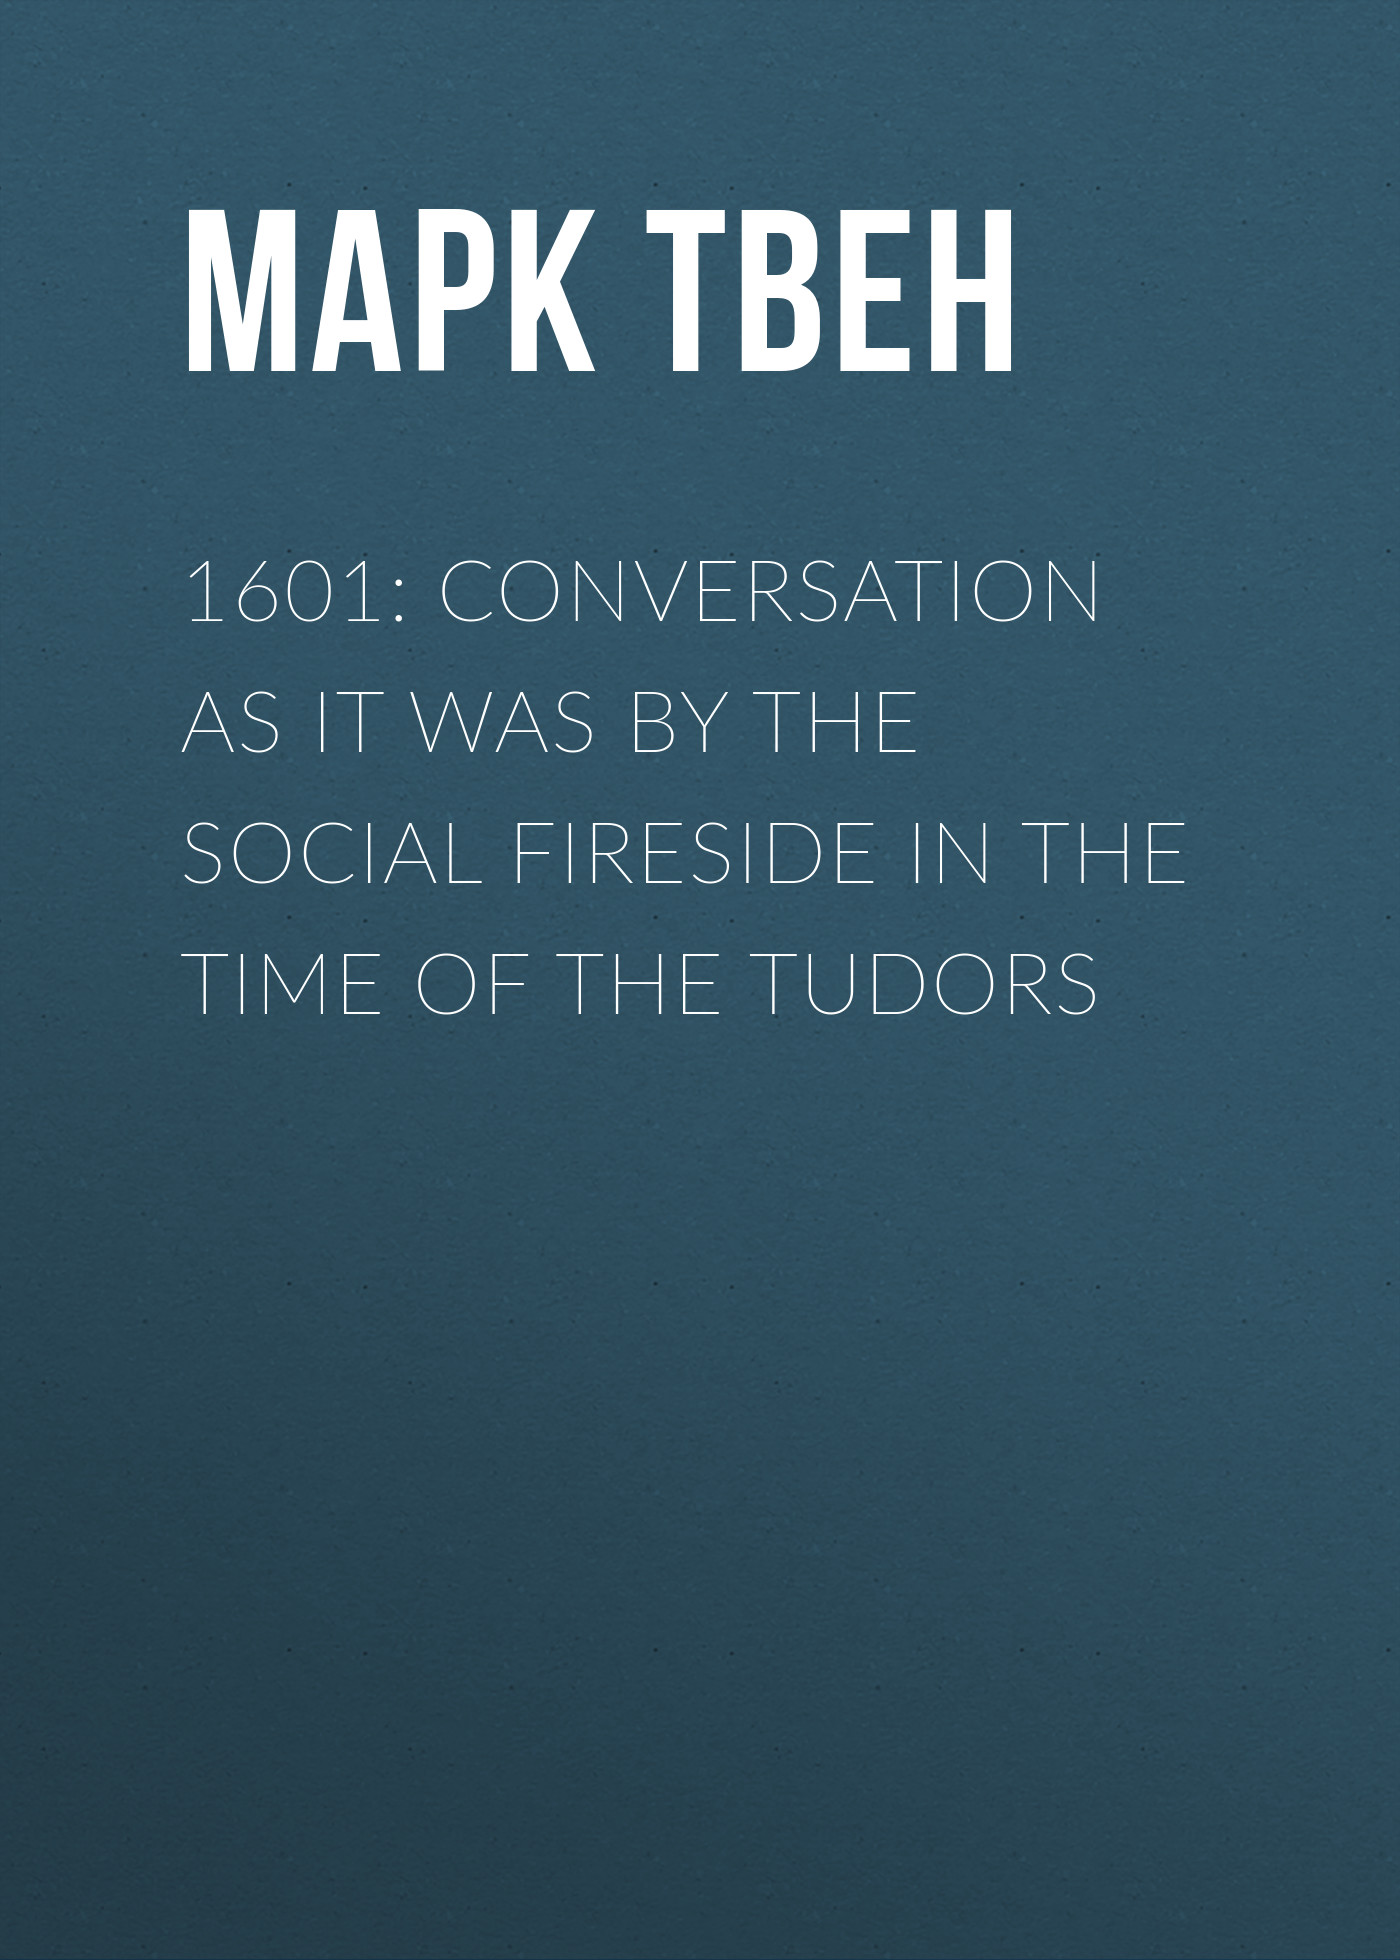 Марк Твен 1601: Conversation as it was by the Social Fireside in the Time of the Tudors цена 2017